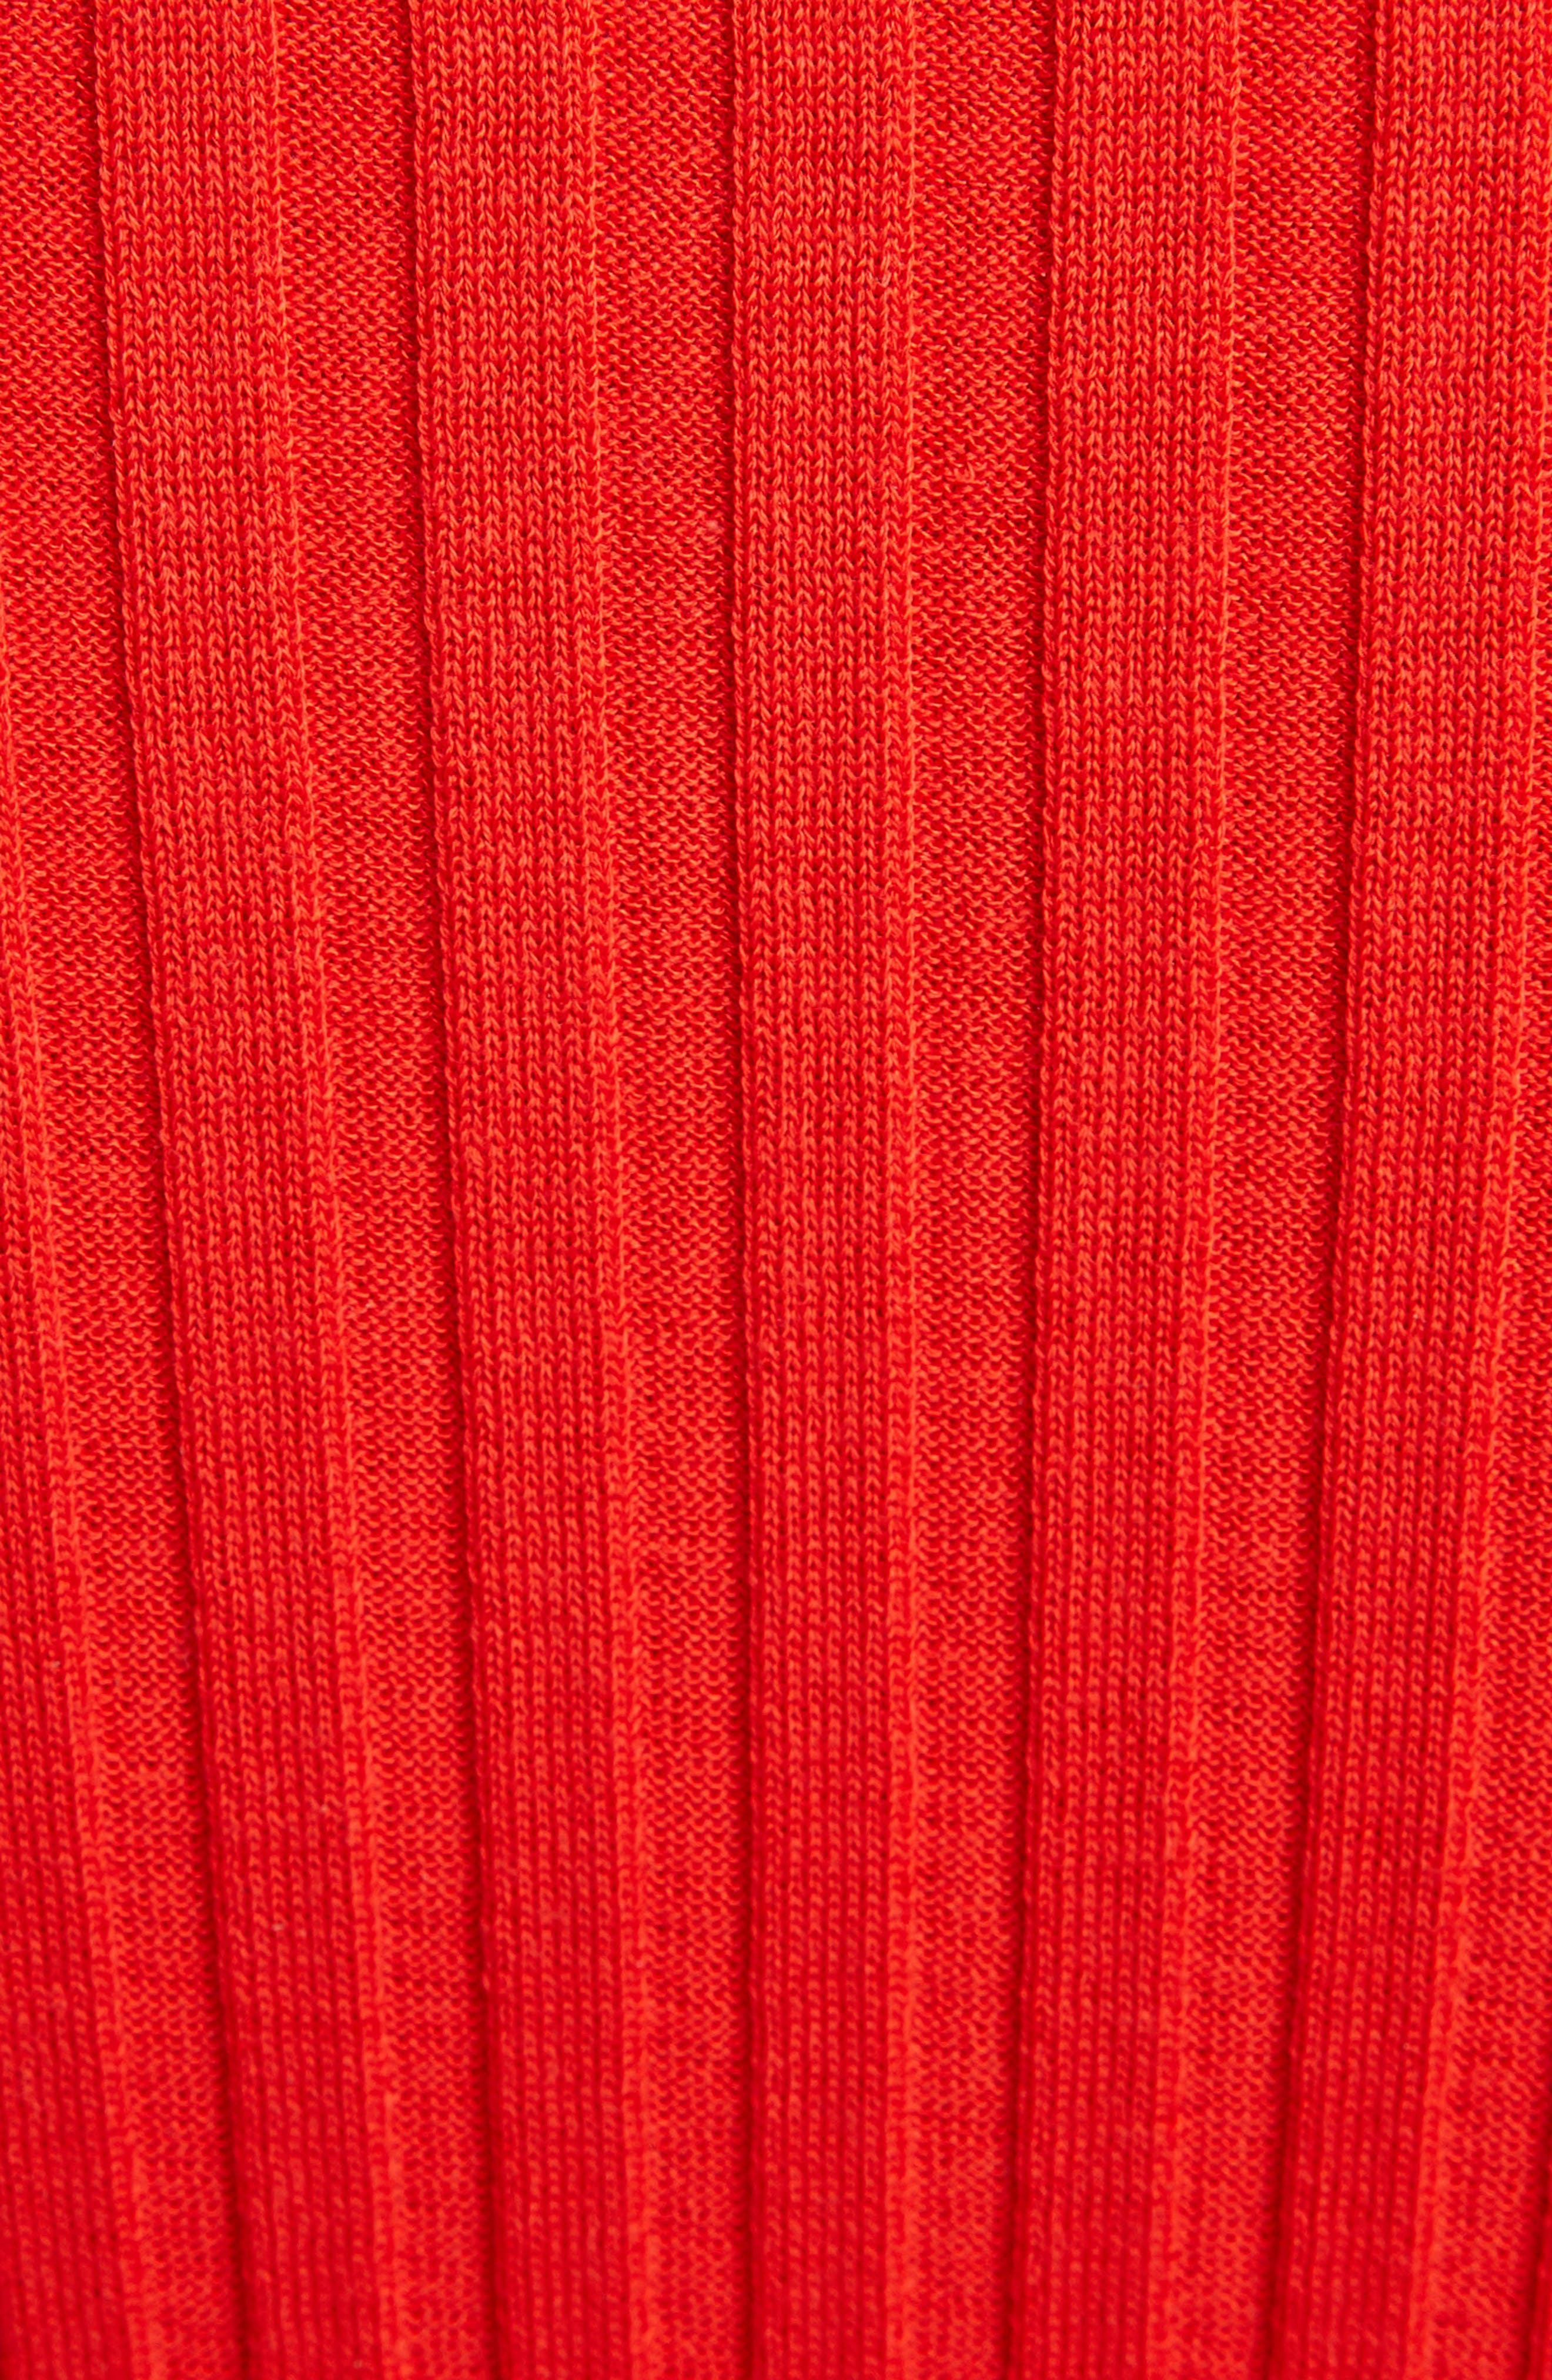 VICTORIA BECKHAM, Gathered Sleeve Rib Knit Turtleneck Sweater, Alternate thumbnail 5, color, BRIGHT RED